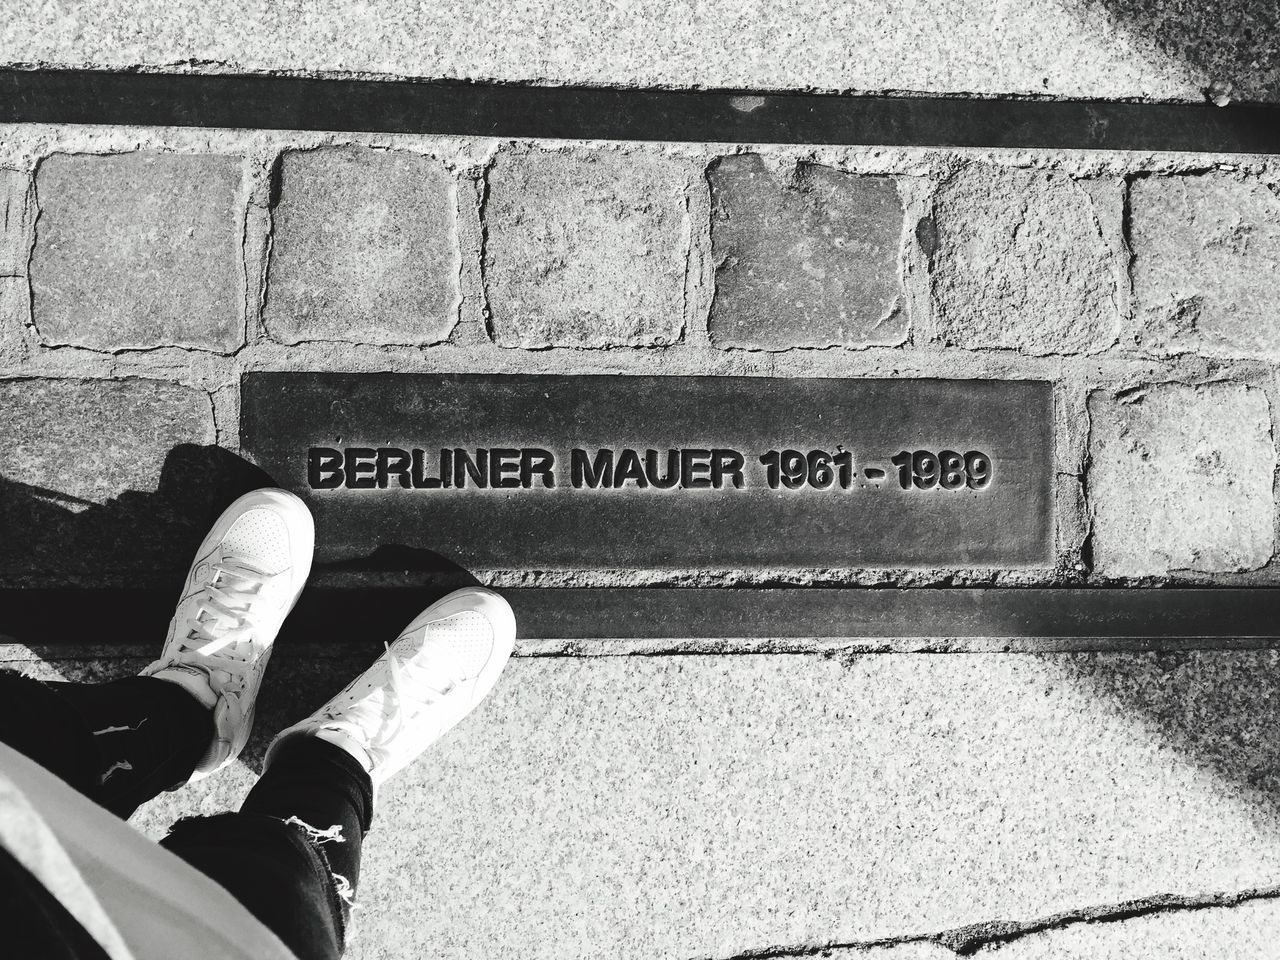 Berlin Berliner Mauer Check This Out Relaxing Taking Photos EyeEm Best Shots - Black + White